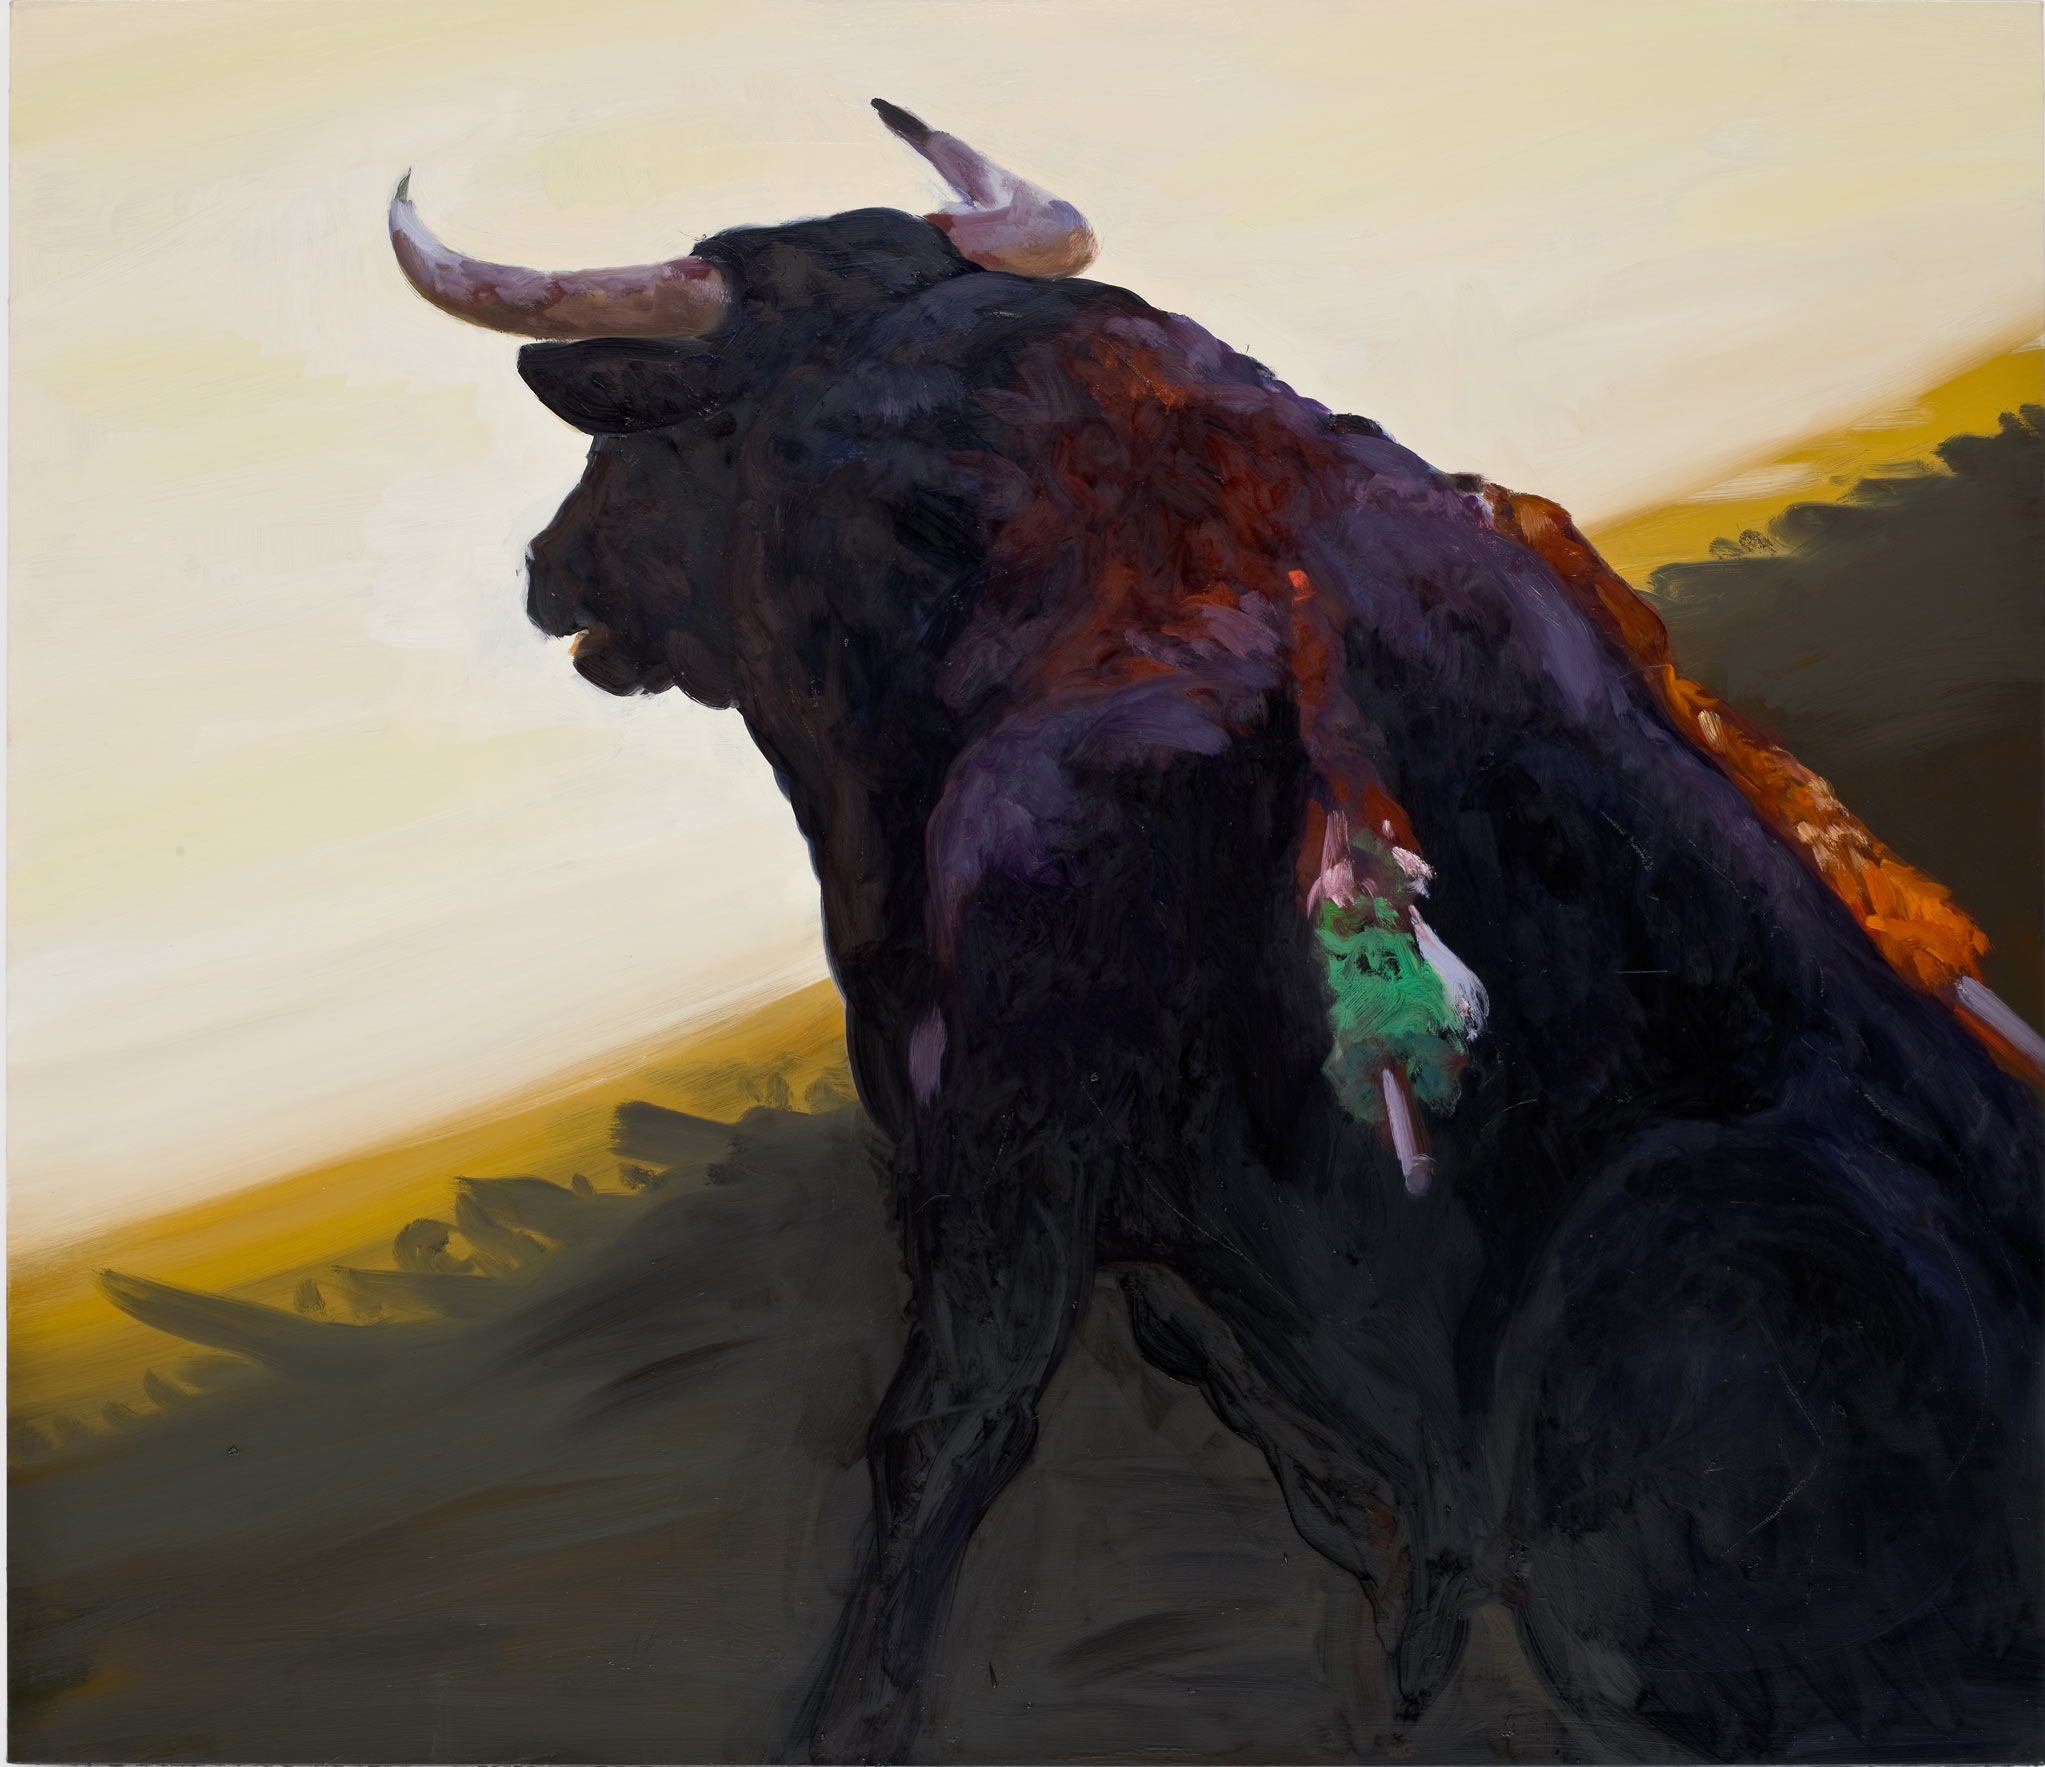 Corrida in Ronda #5, 2008. Oil on Linen. 52 x 60 in. (132 x 152 cm.)